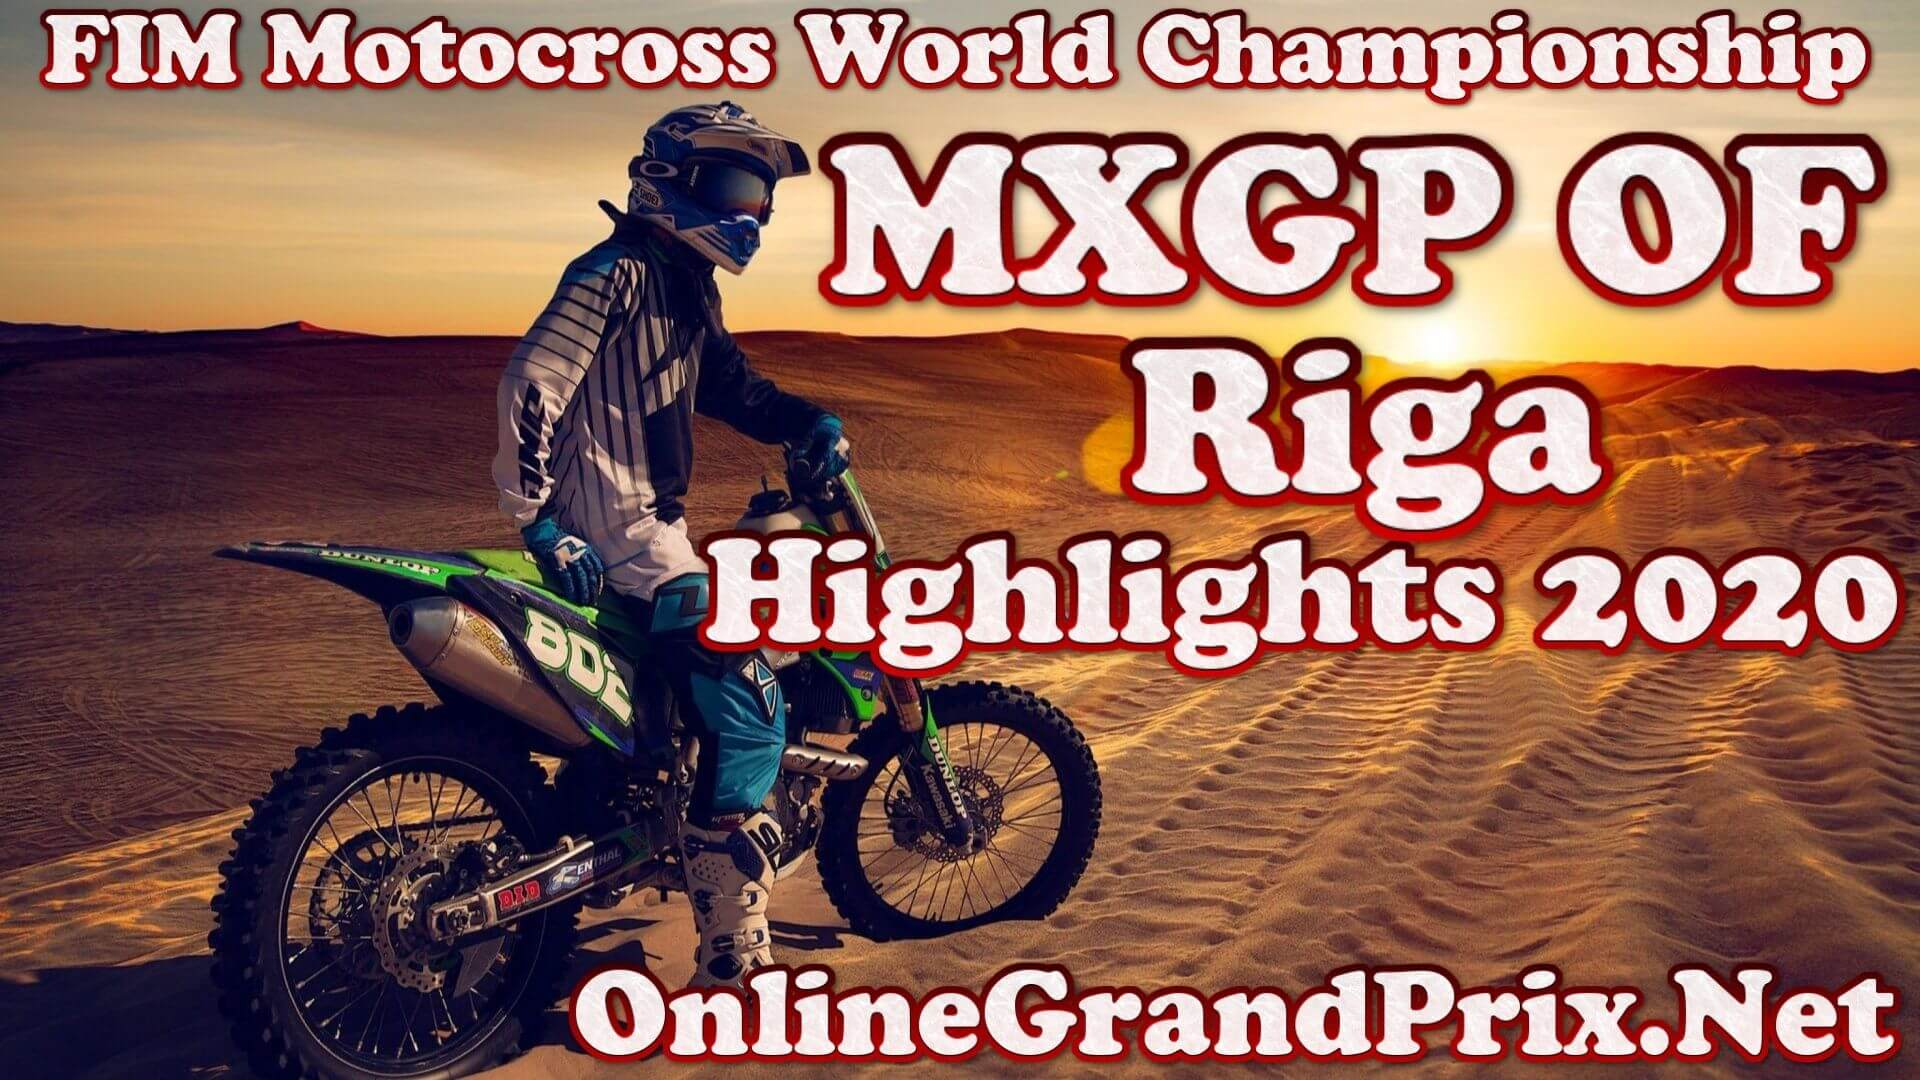 MXGP of Riga Highlights 2020